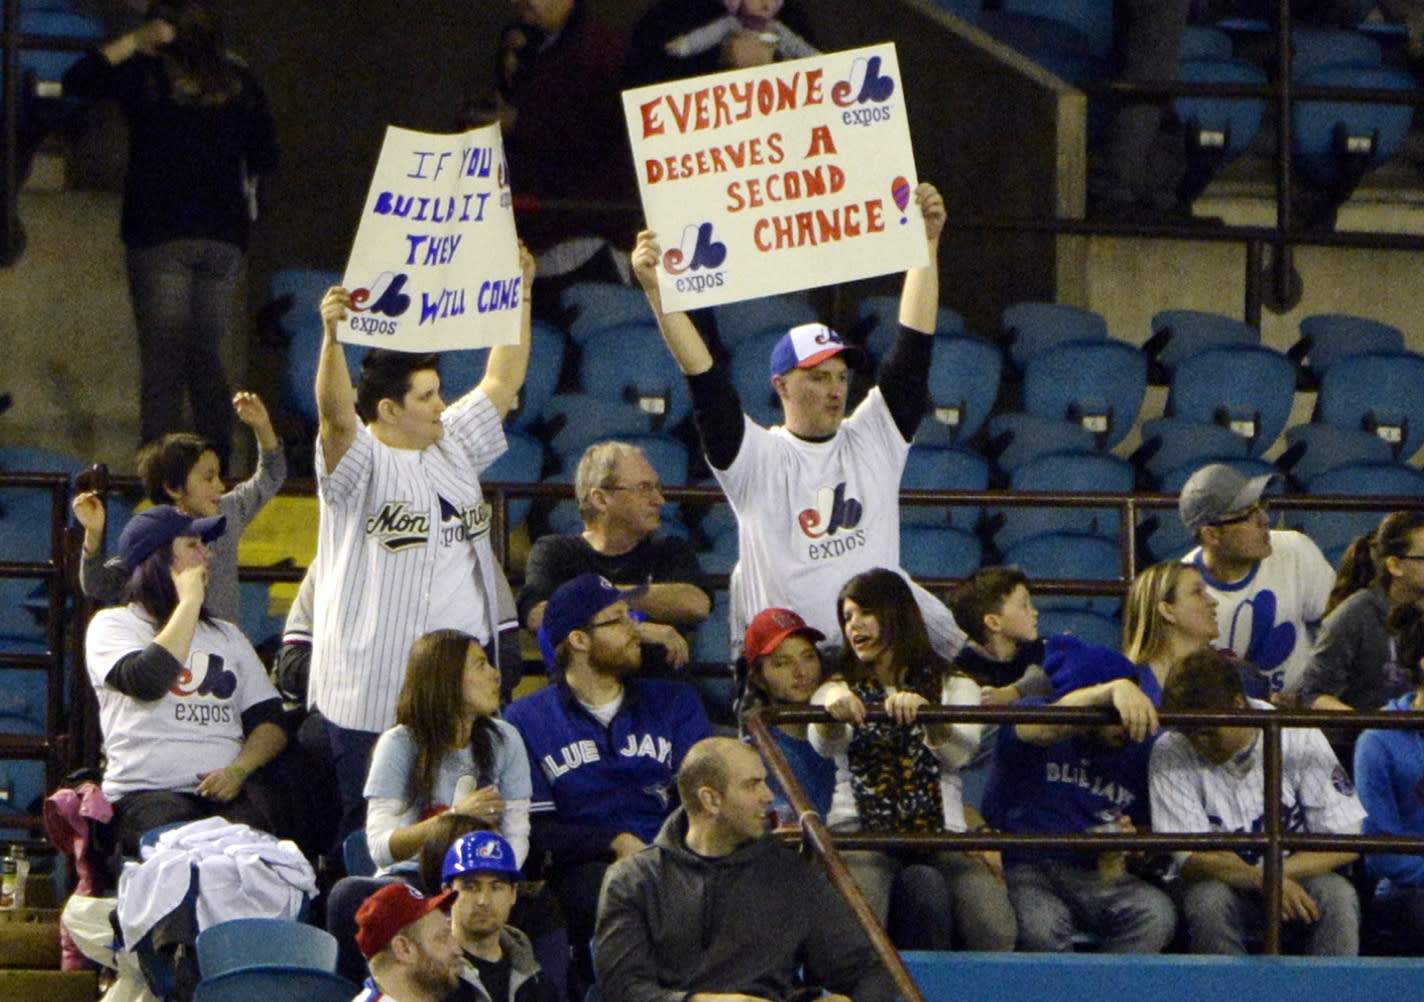 MLB's return to Montreal 'possible' according to Rob Manfred